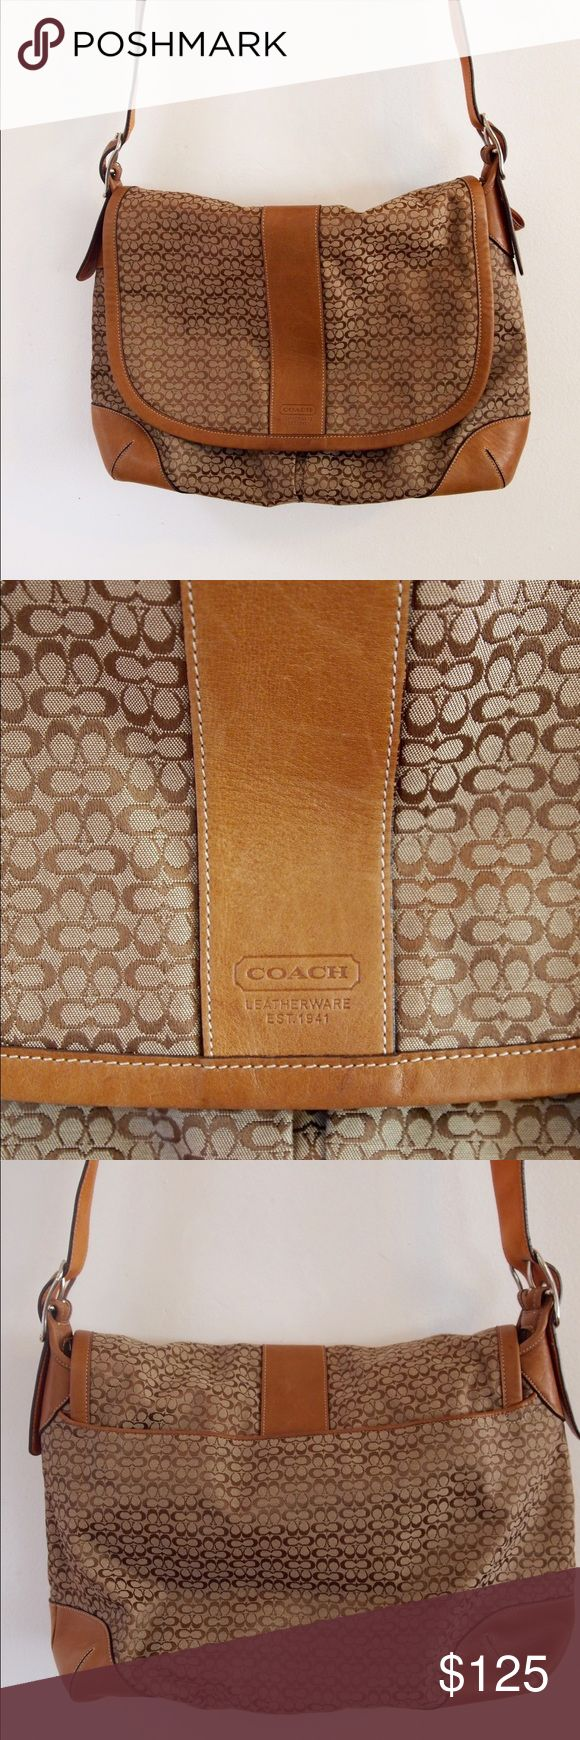 Coach Messenger Bag Limited Edition Coach Messenger Bag. Camel Color. Only used 3 times! In great condition! Can be used as a carry on. Just has a couple stains on the bottom of bag, so you don't really see it. And one small one on strap. Coach Bags Shoulder Bags